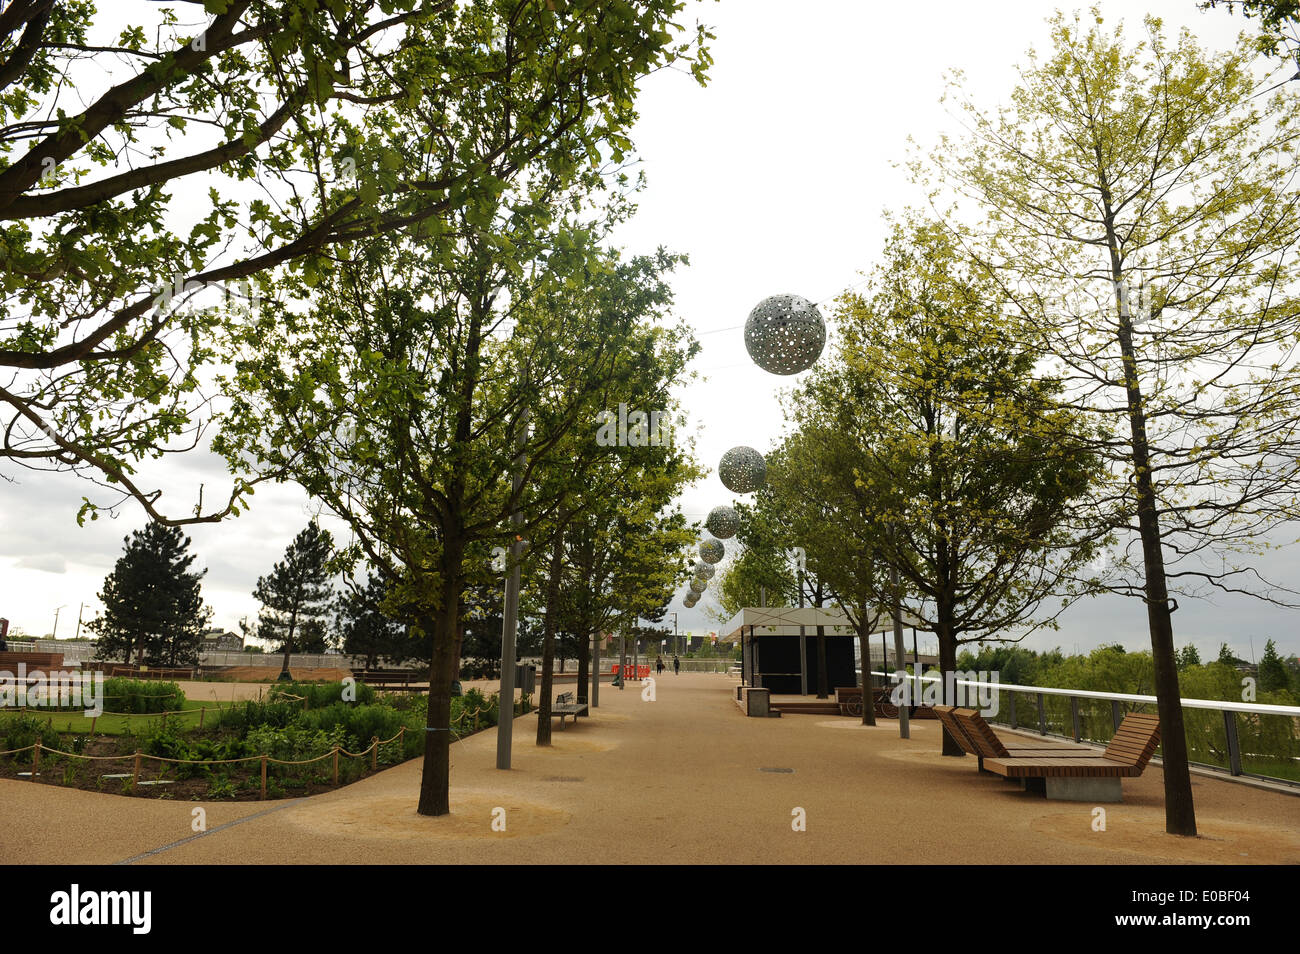 LONDON, ENGLAND - Wednesday 7 May 2014, a general view of the Queen Elizabeth Olympic Park in Stratford, London - Stock Image